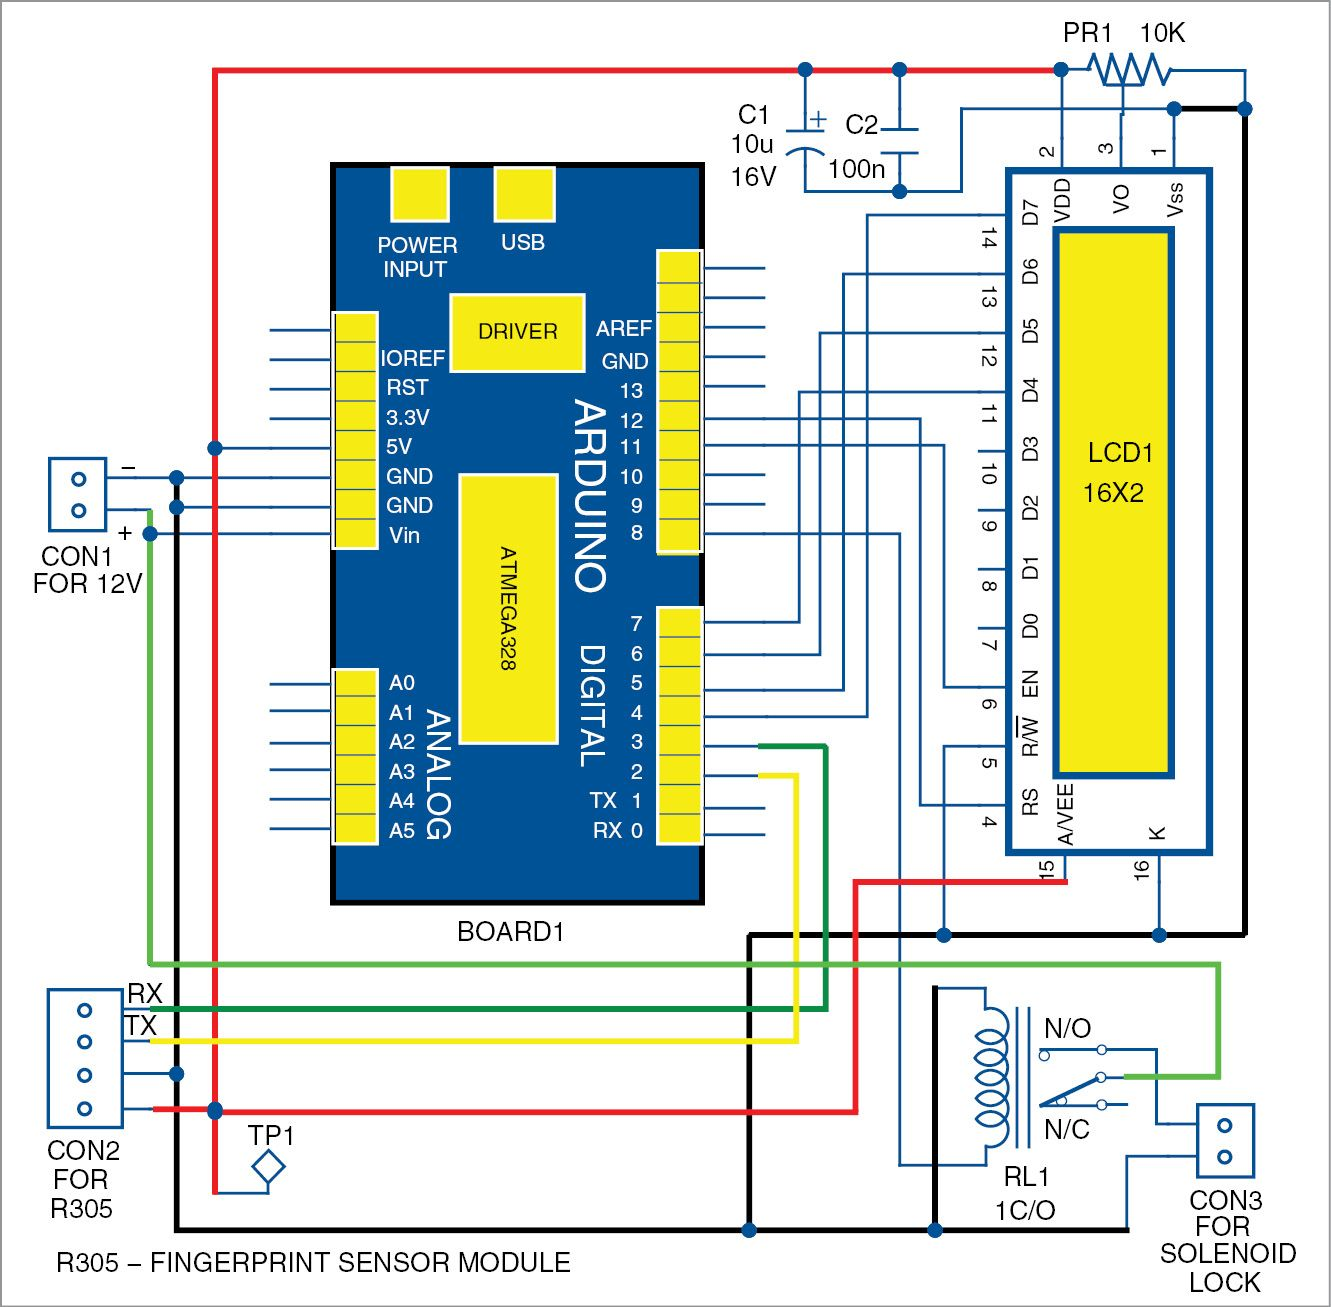 Simplisafe Ms1 Extra Motion Sensor In 2018 Circuit Diagrams Pirsensorbasedsecurityalarmcircuitdiagramjpg This Simple Fingerprint Project Using Arduino Can Be Very Useful For Door Security Forensics